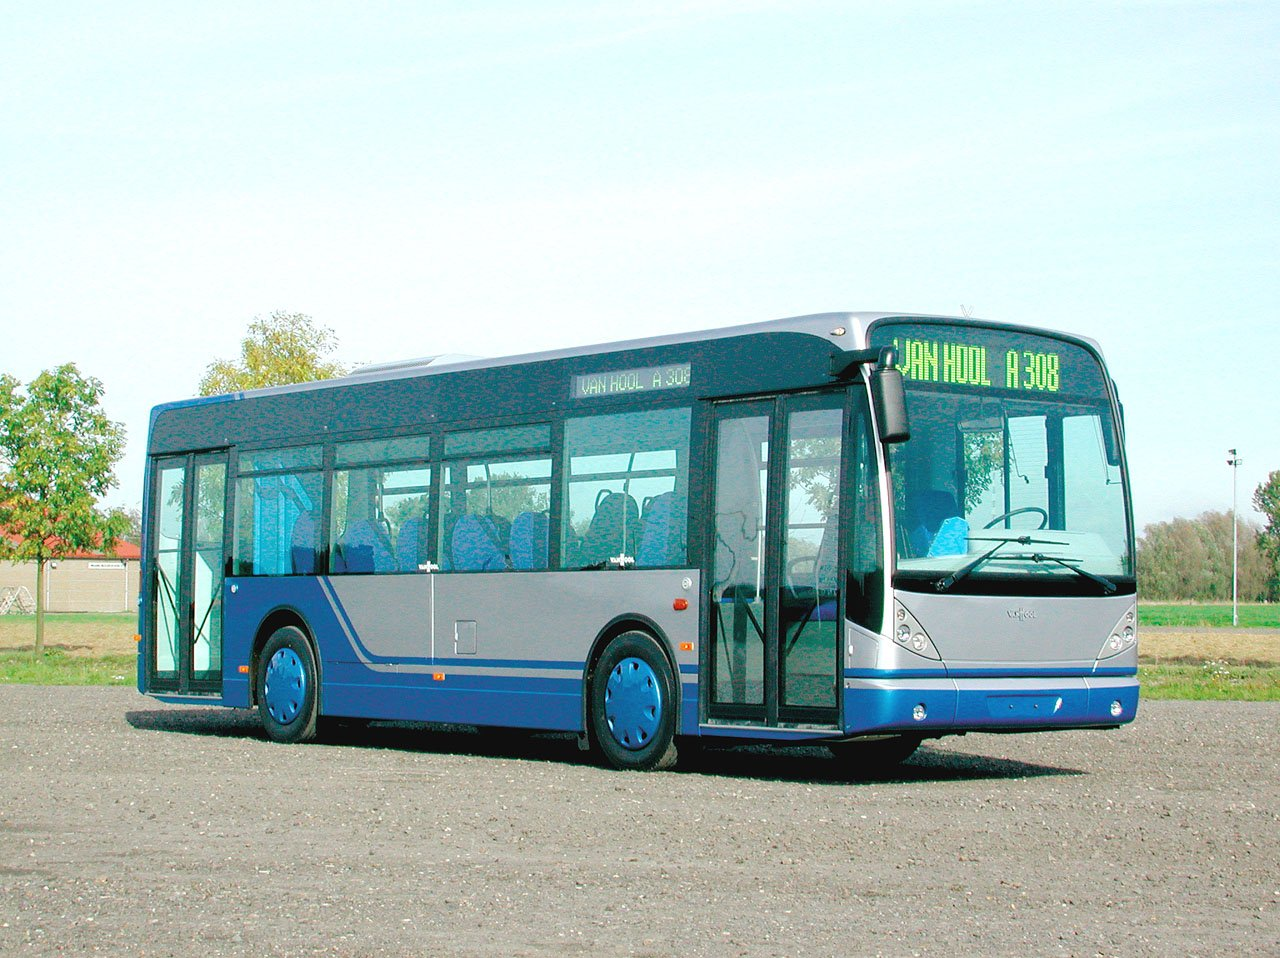 Van hool a600 photo - 2